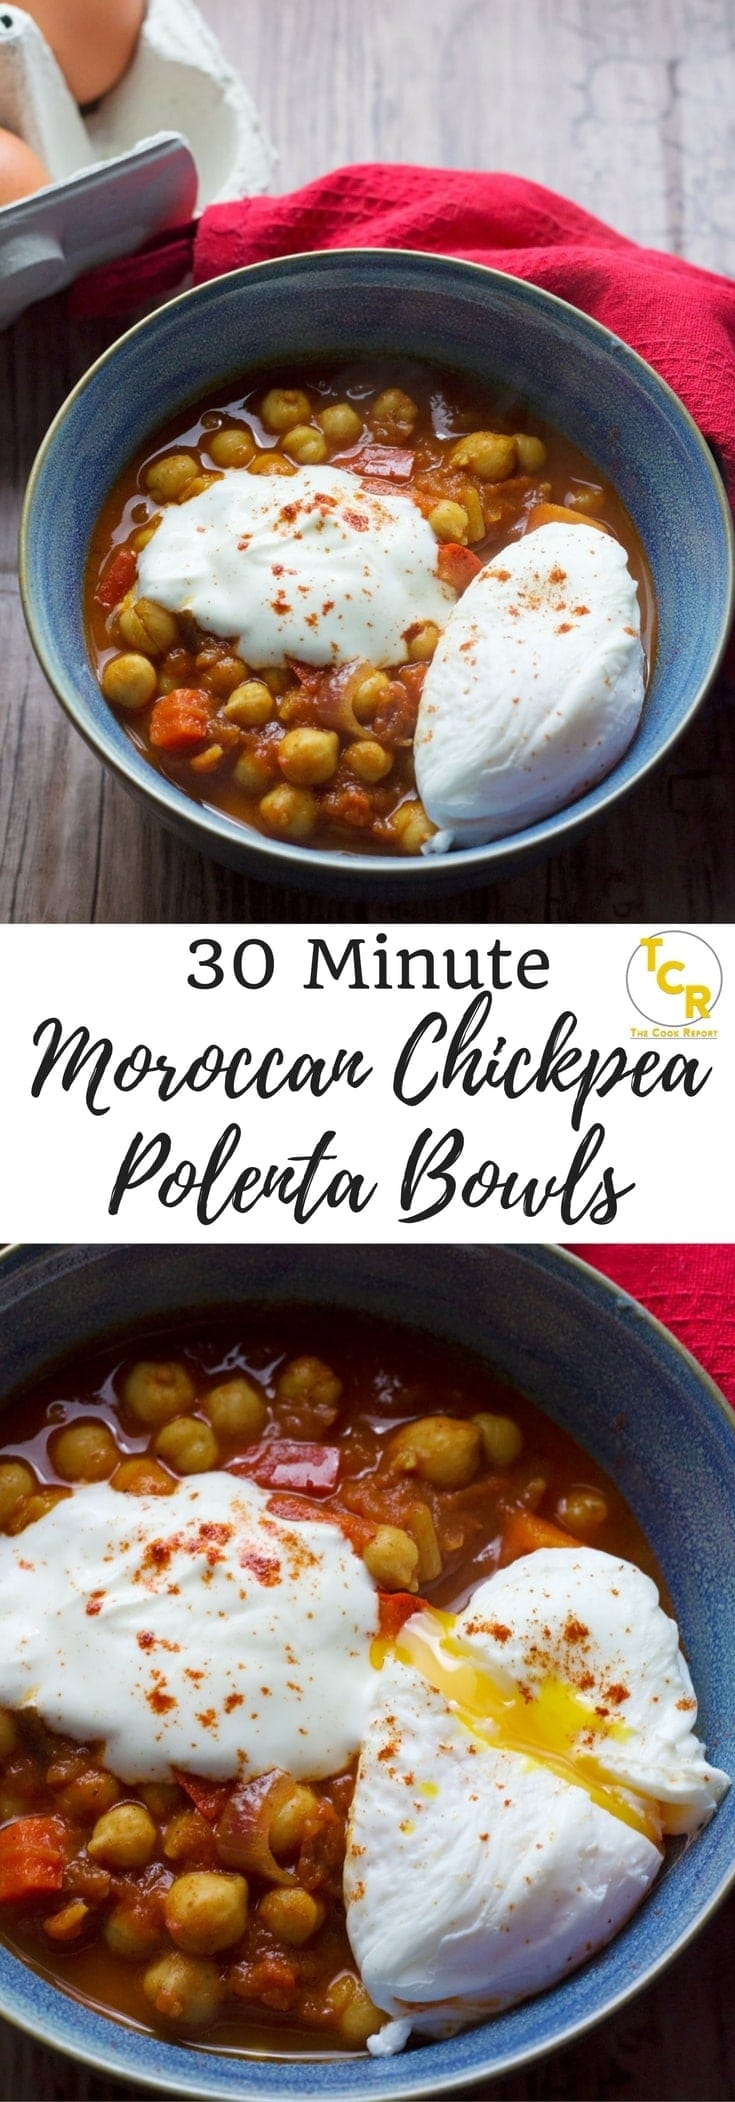 These 30 minute Moroccan chickpea polenta bowls are the perfect weeknight dinner! Smoky chickpeas and creamy polenta are perfect topped with a poached egg.